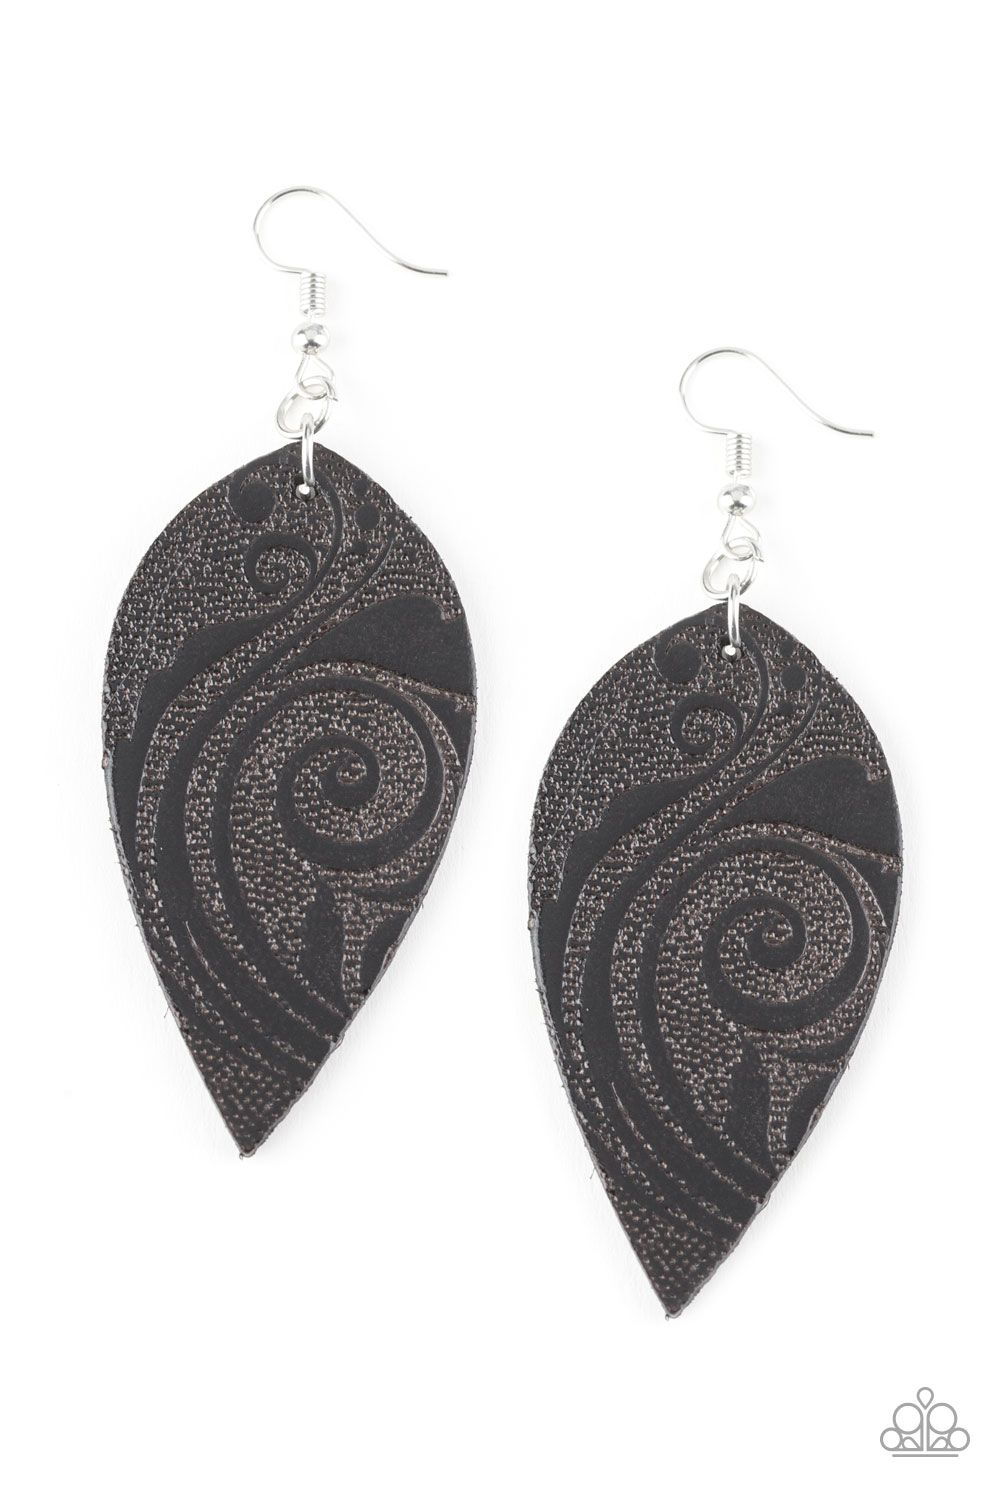 5f46d6750 Groovy Grove - Black Leather Earring 💞ONLY- $5💞 No Nickel! No Lead!  www.razzledazzlevip.com